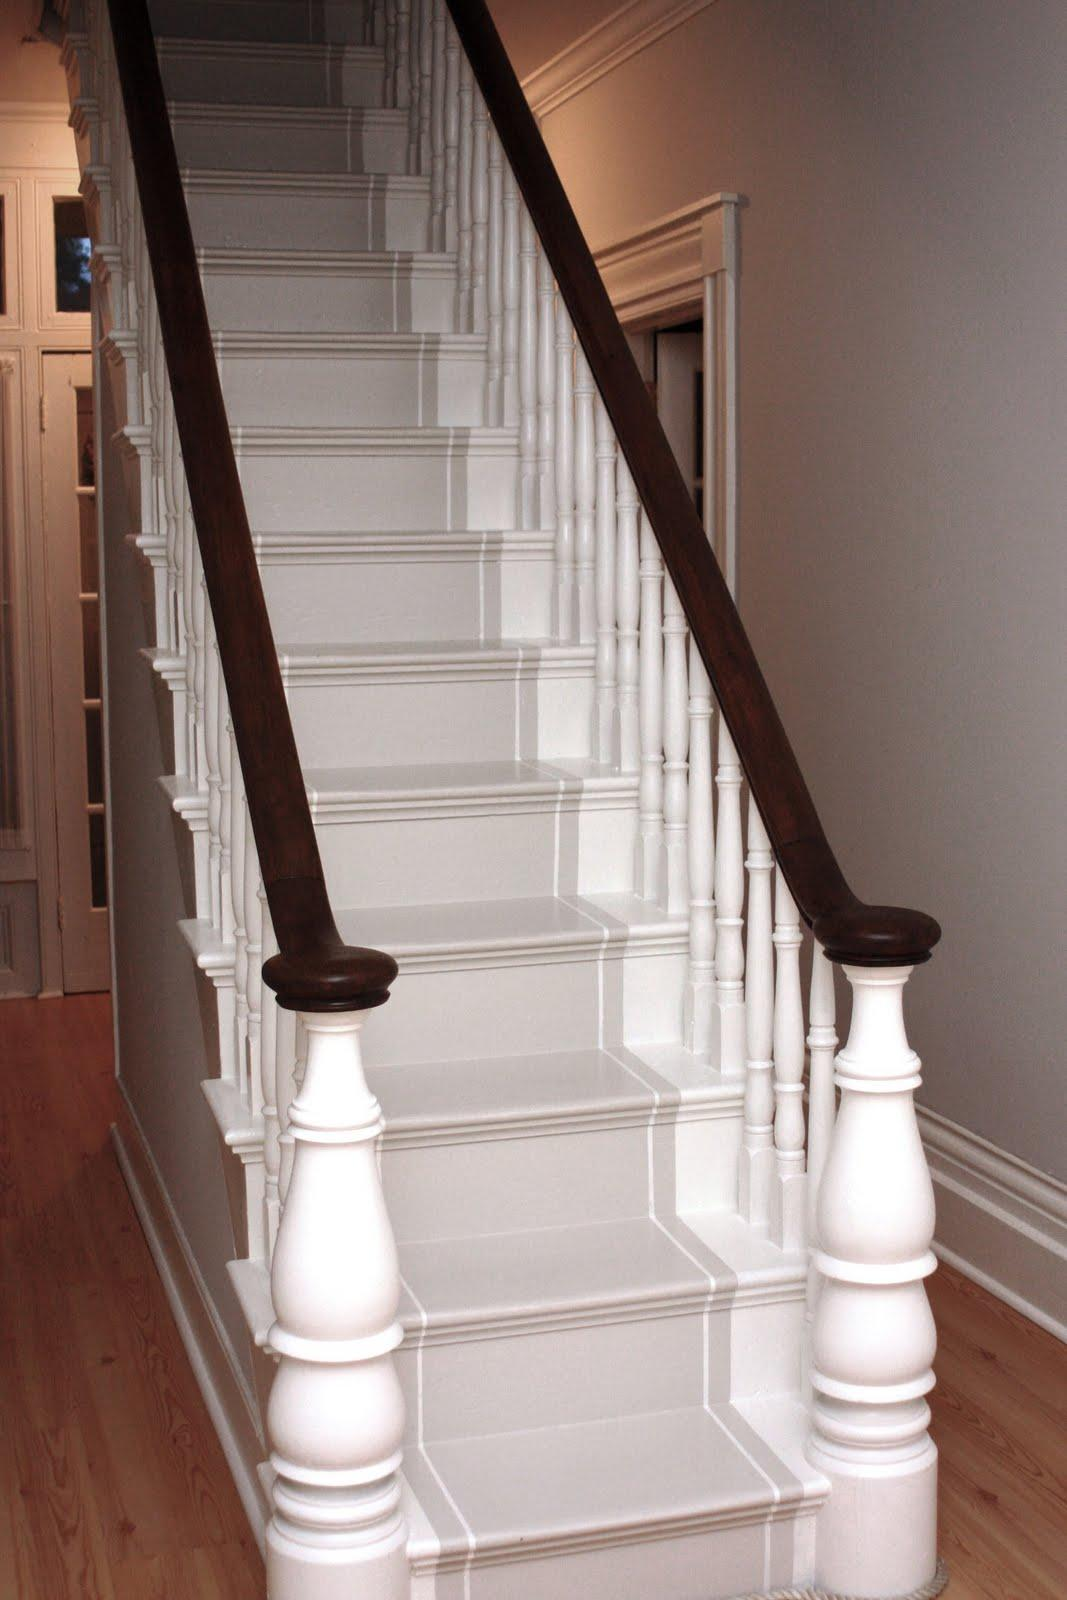 Stairway solutions musings on runners risers and treads - Painting wooden stairs white ...